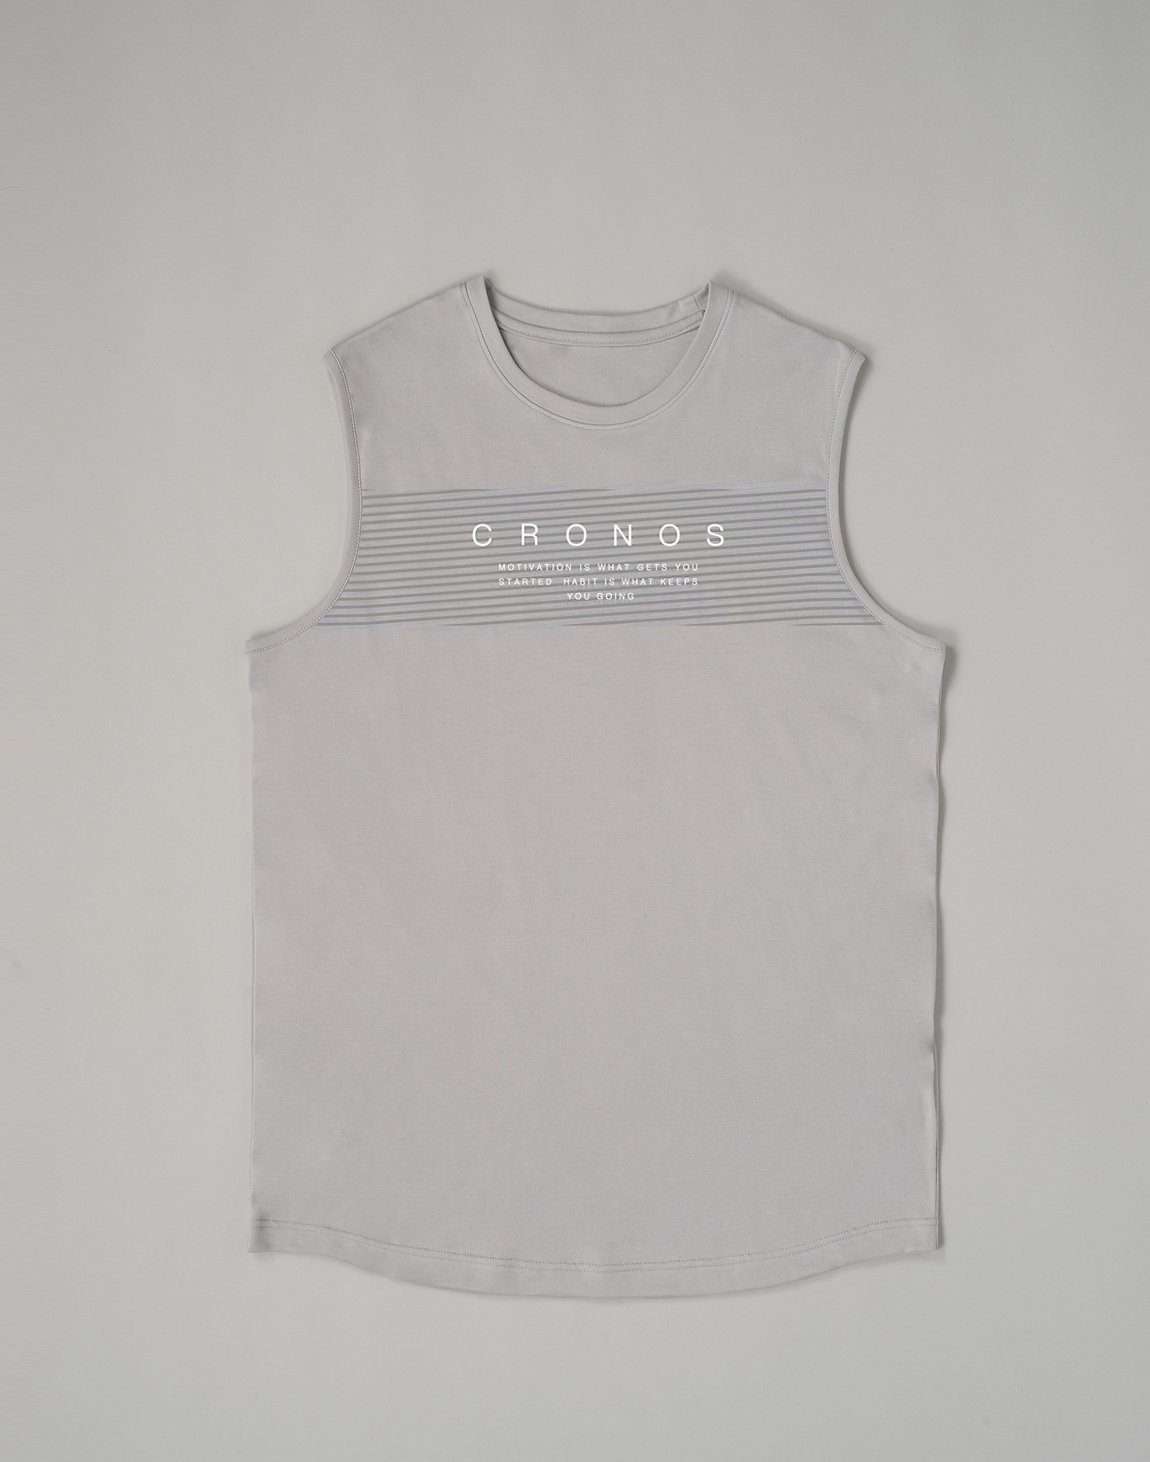 <img class='new_mark_img1' src='https://img.shop-pro.jp/img/new/icons1.gif' style='border:none;display:inline;margin:0px;padding:0px;width:auto;' />CRONOS PARALLEL LINE LOGO  MUSLE TOP【GRAY】